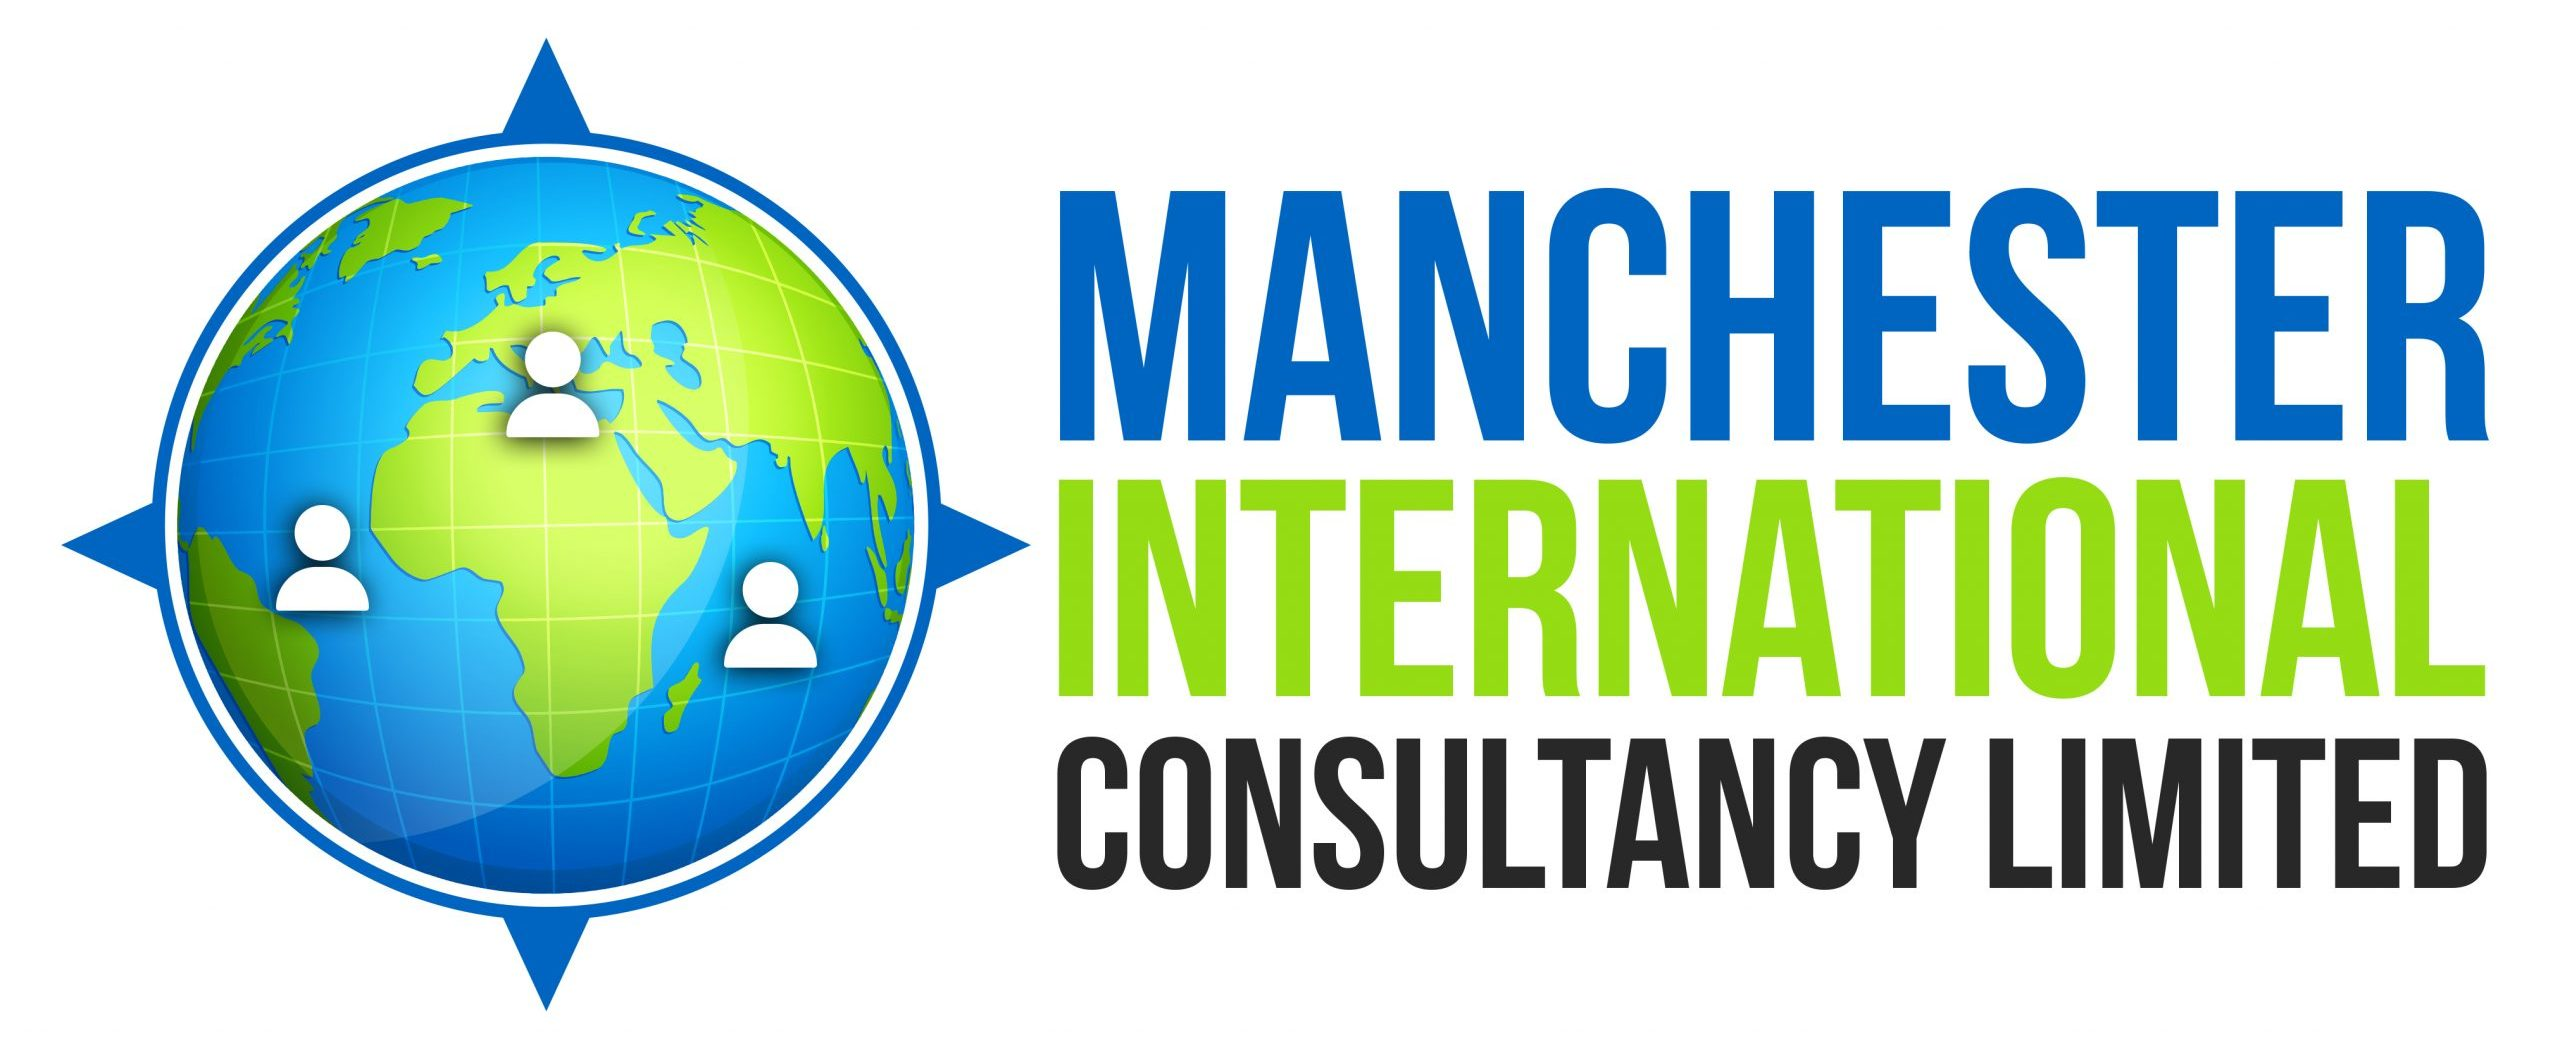 Manchester International Consultancy Limited